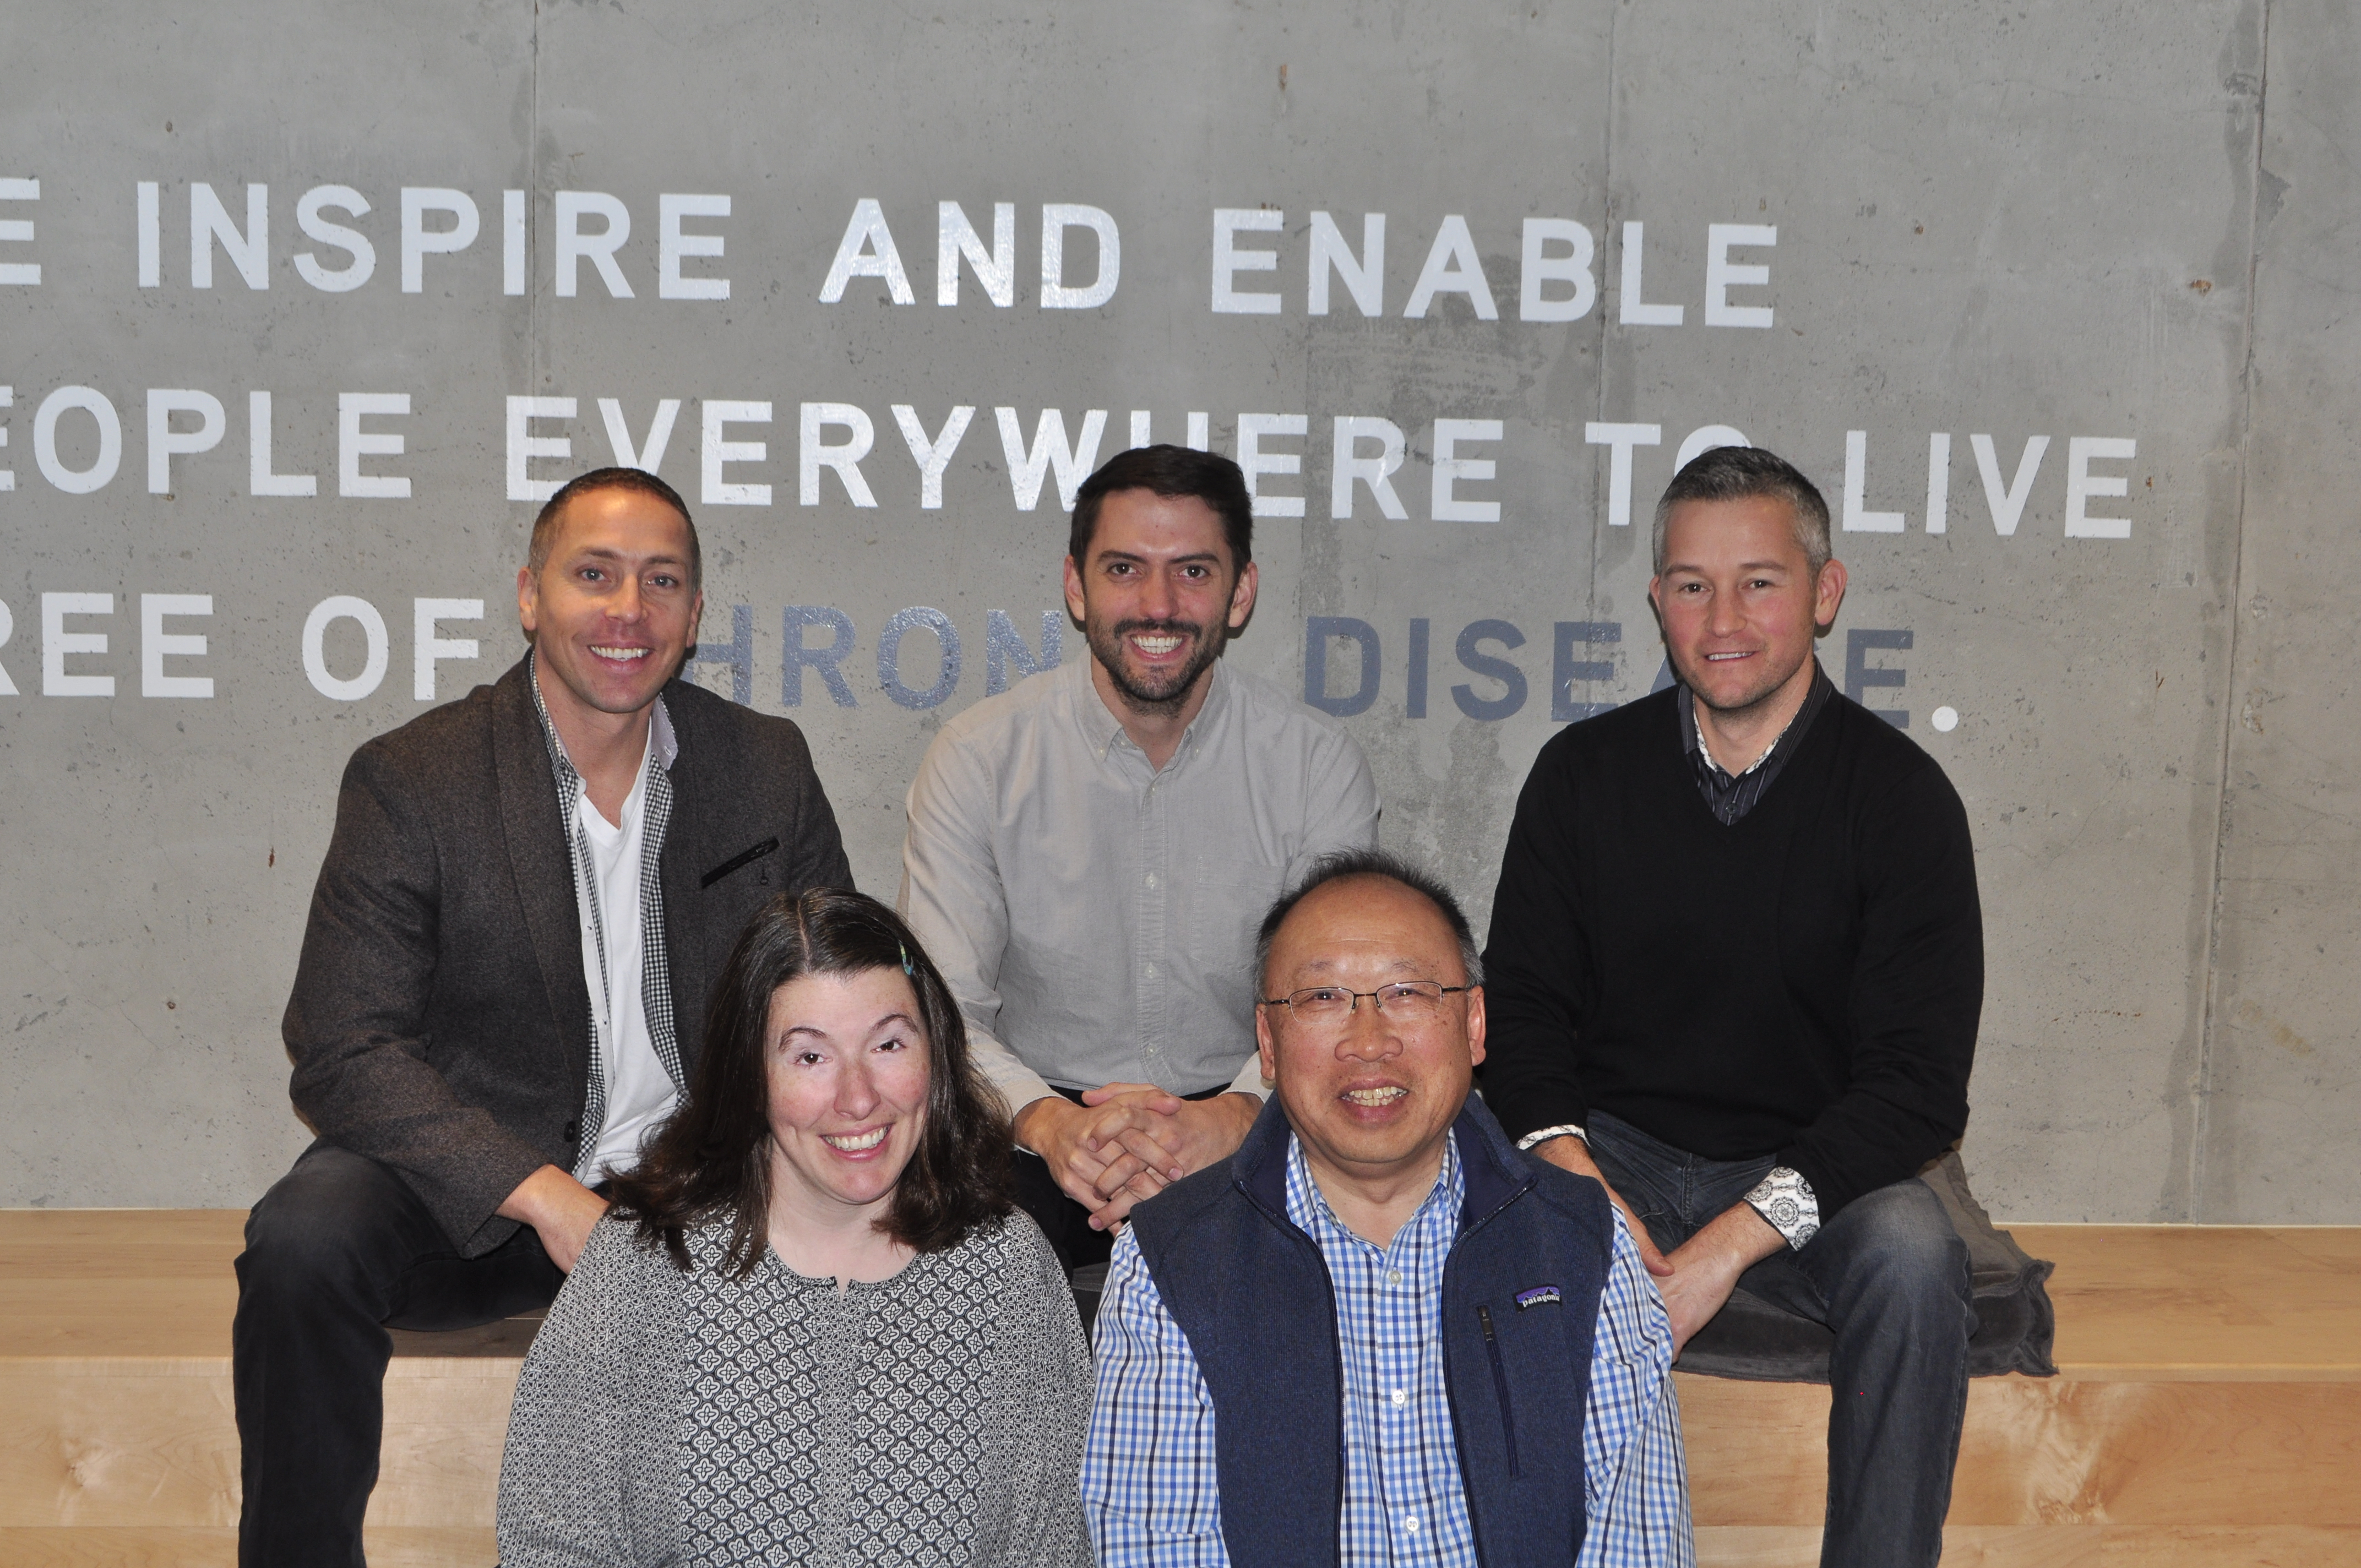 The new team members include Dr. Paul Chew (bottom right) and Tom Schoenherr (top left).